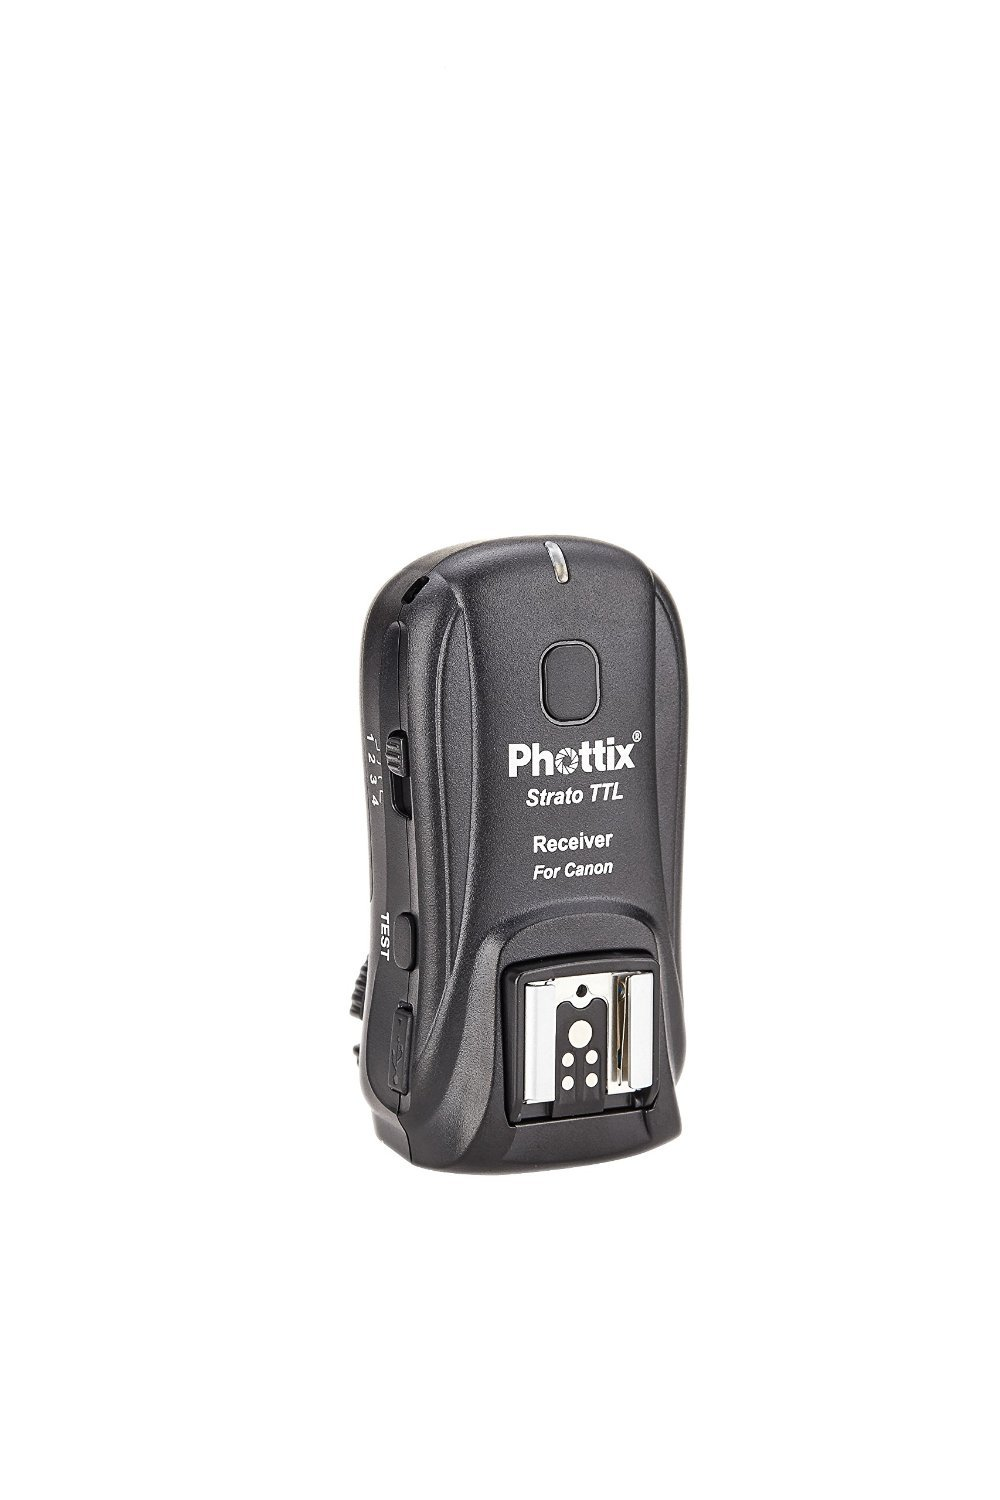 Phottix Strato TTL Wireless Flash Trigger for Canon - Receiver (PH89016)